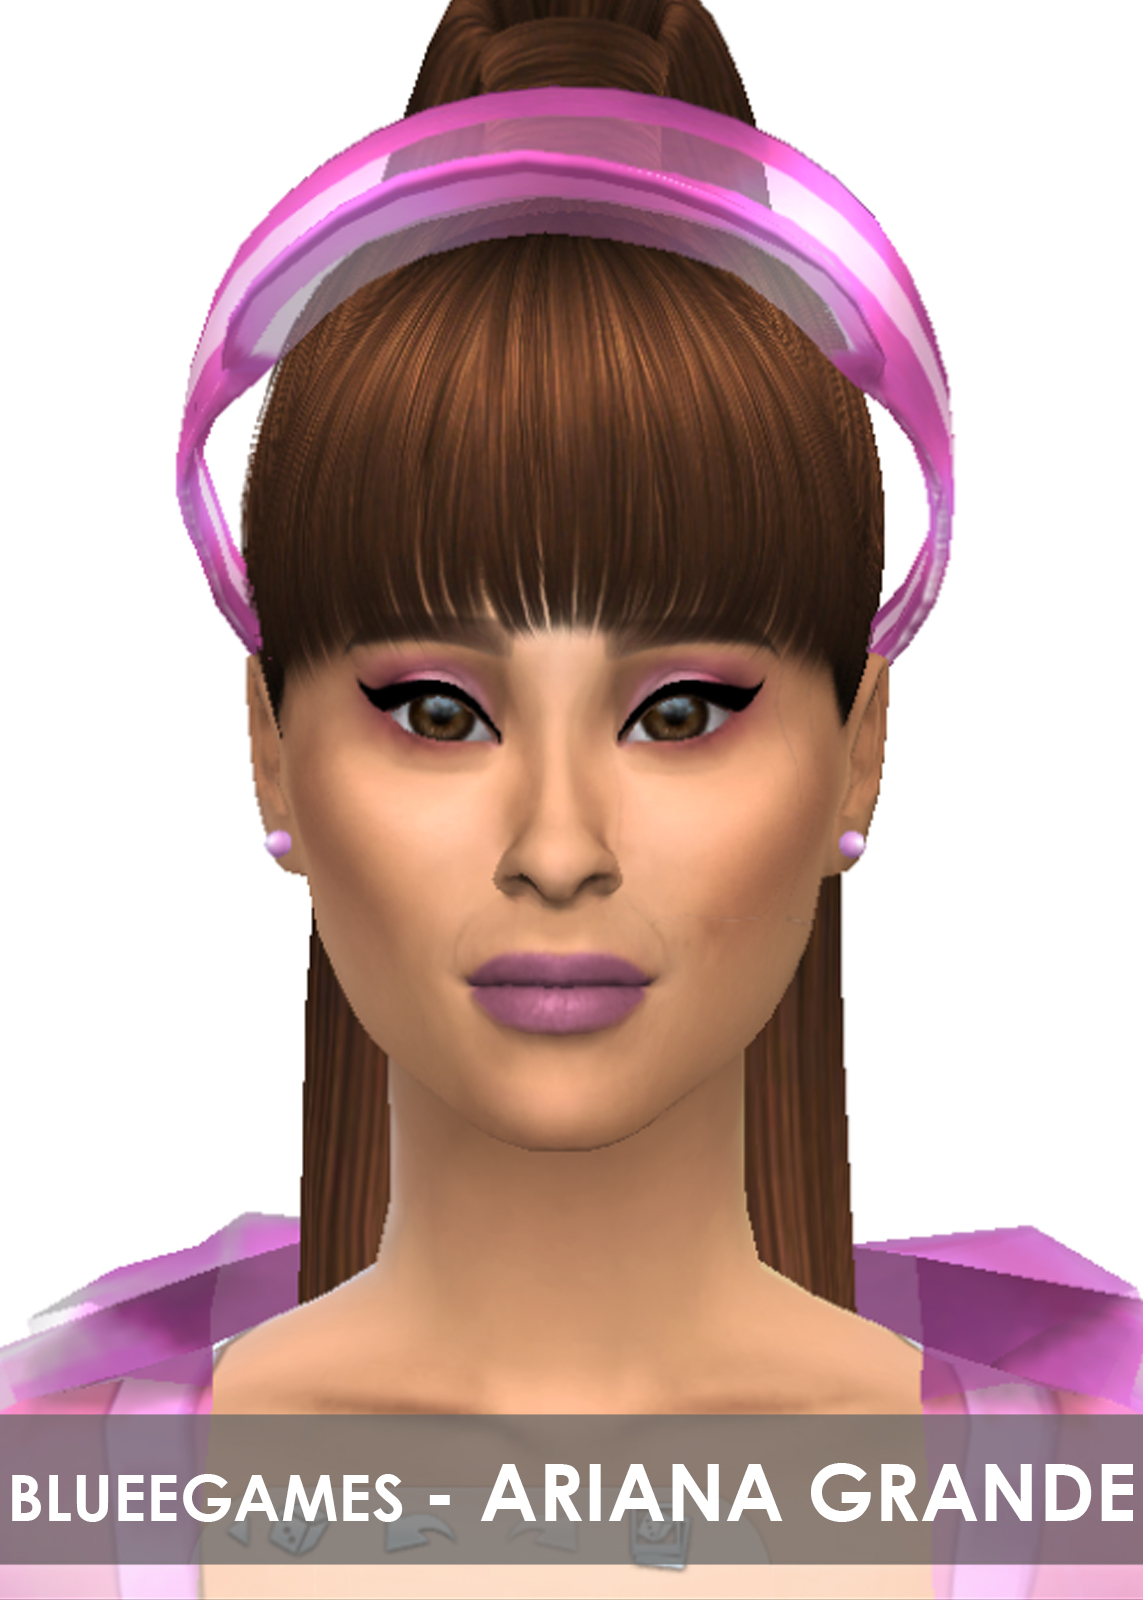 House Building Games Like The Sims Celebrities Ariana Grande Side To Side Vmas